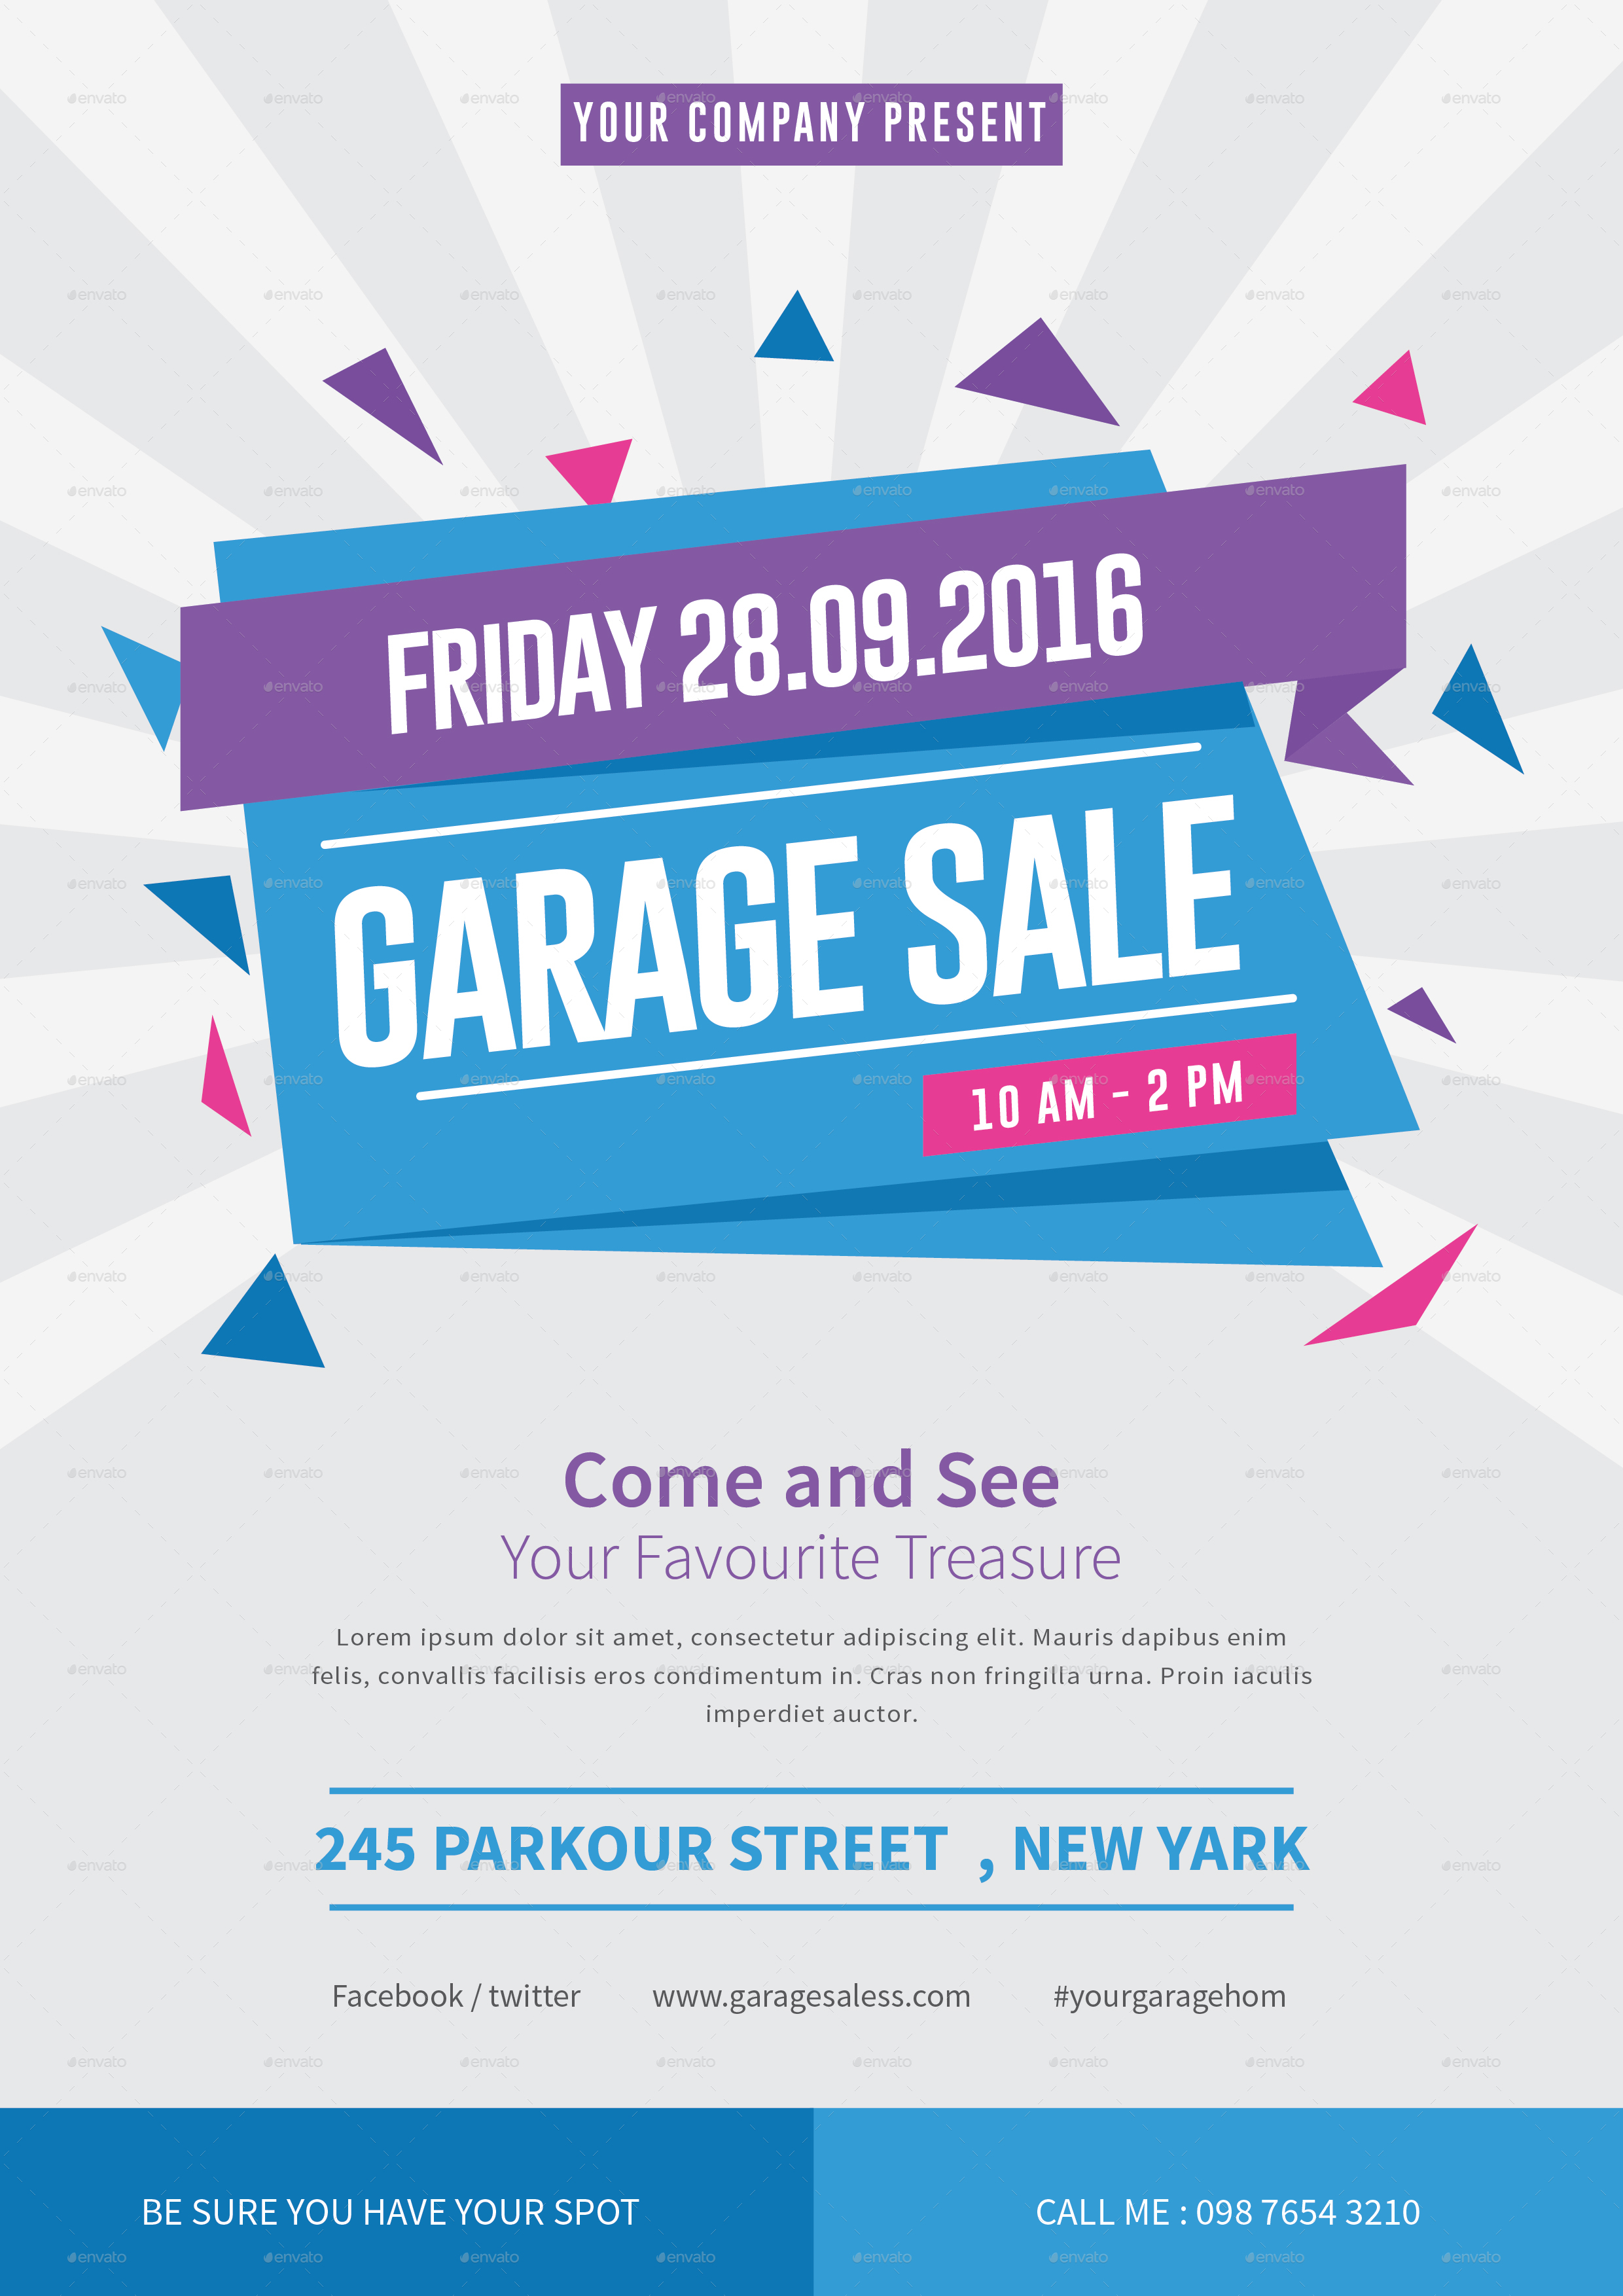 Garage Sale Flyer by tokosatsu | GraphicRiver